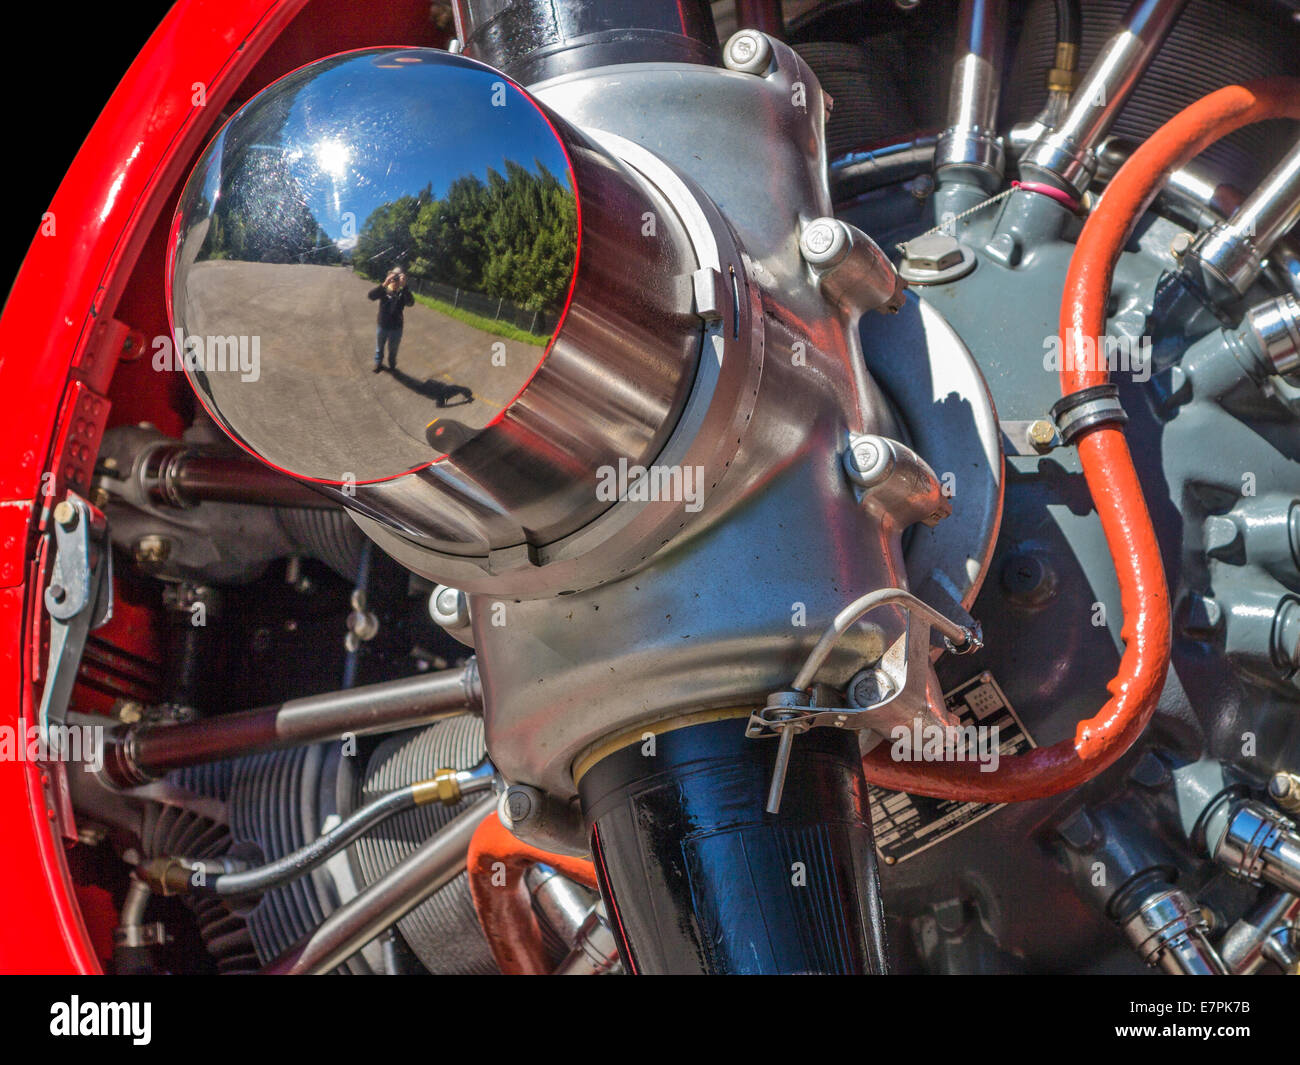 Selfie in an airplane engine. A Pratt & Whitney aircraft engine with a reflection of the photographer in the - Stock Image